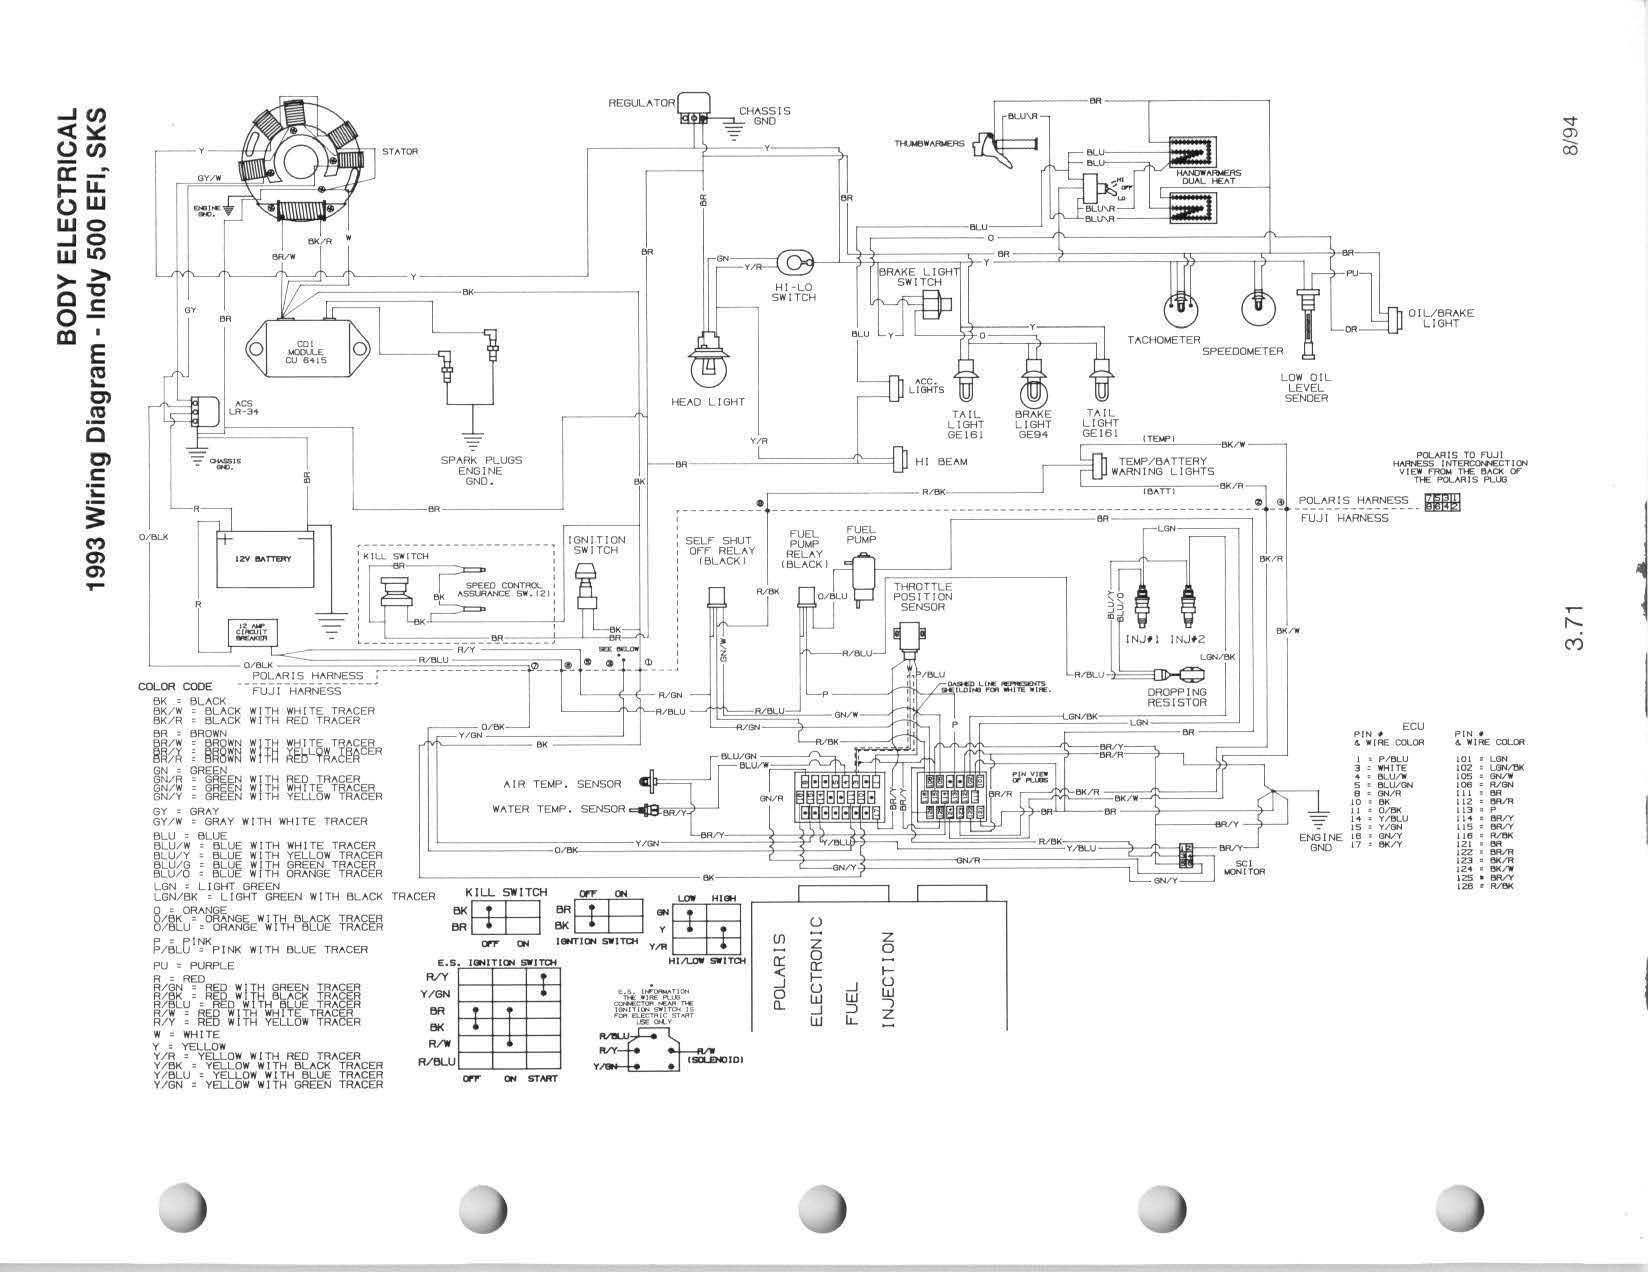 Polari Magnum 425 Wiring Diagram - Wiring Diagram